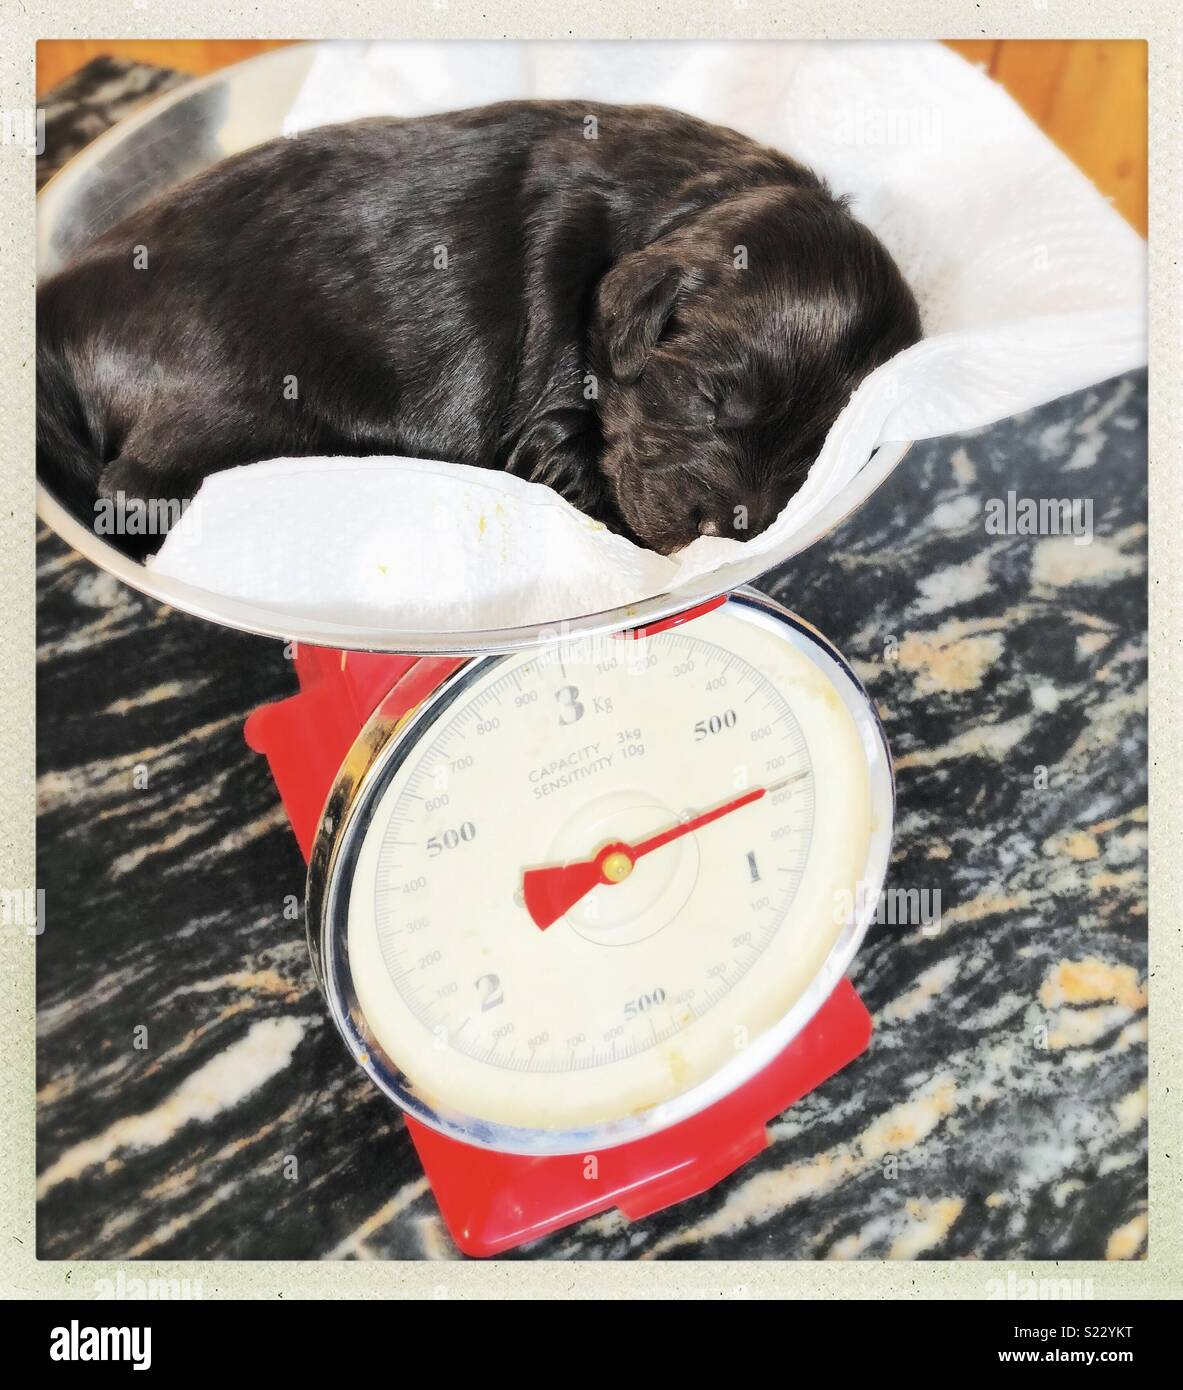 Springerdoodle puppy being weighed on a set of kitchen scales Stock